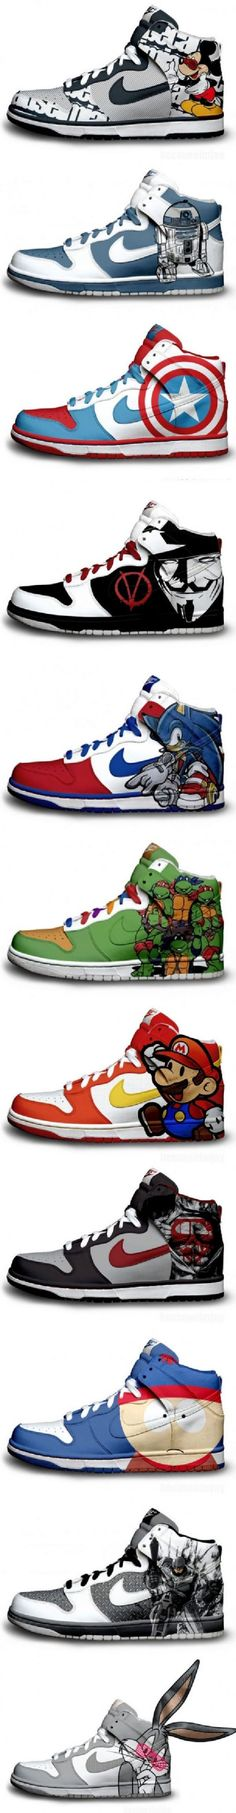 OMG I would probably wear these Redesign your Nikes?  Just do it!